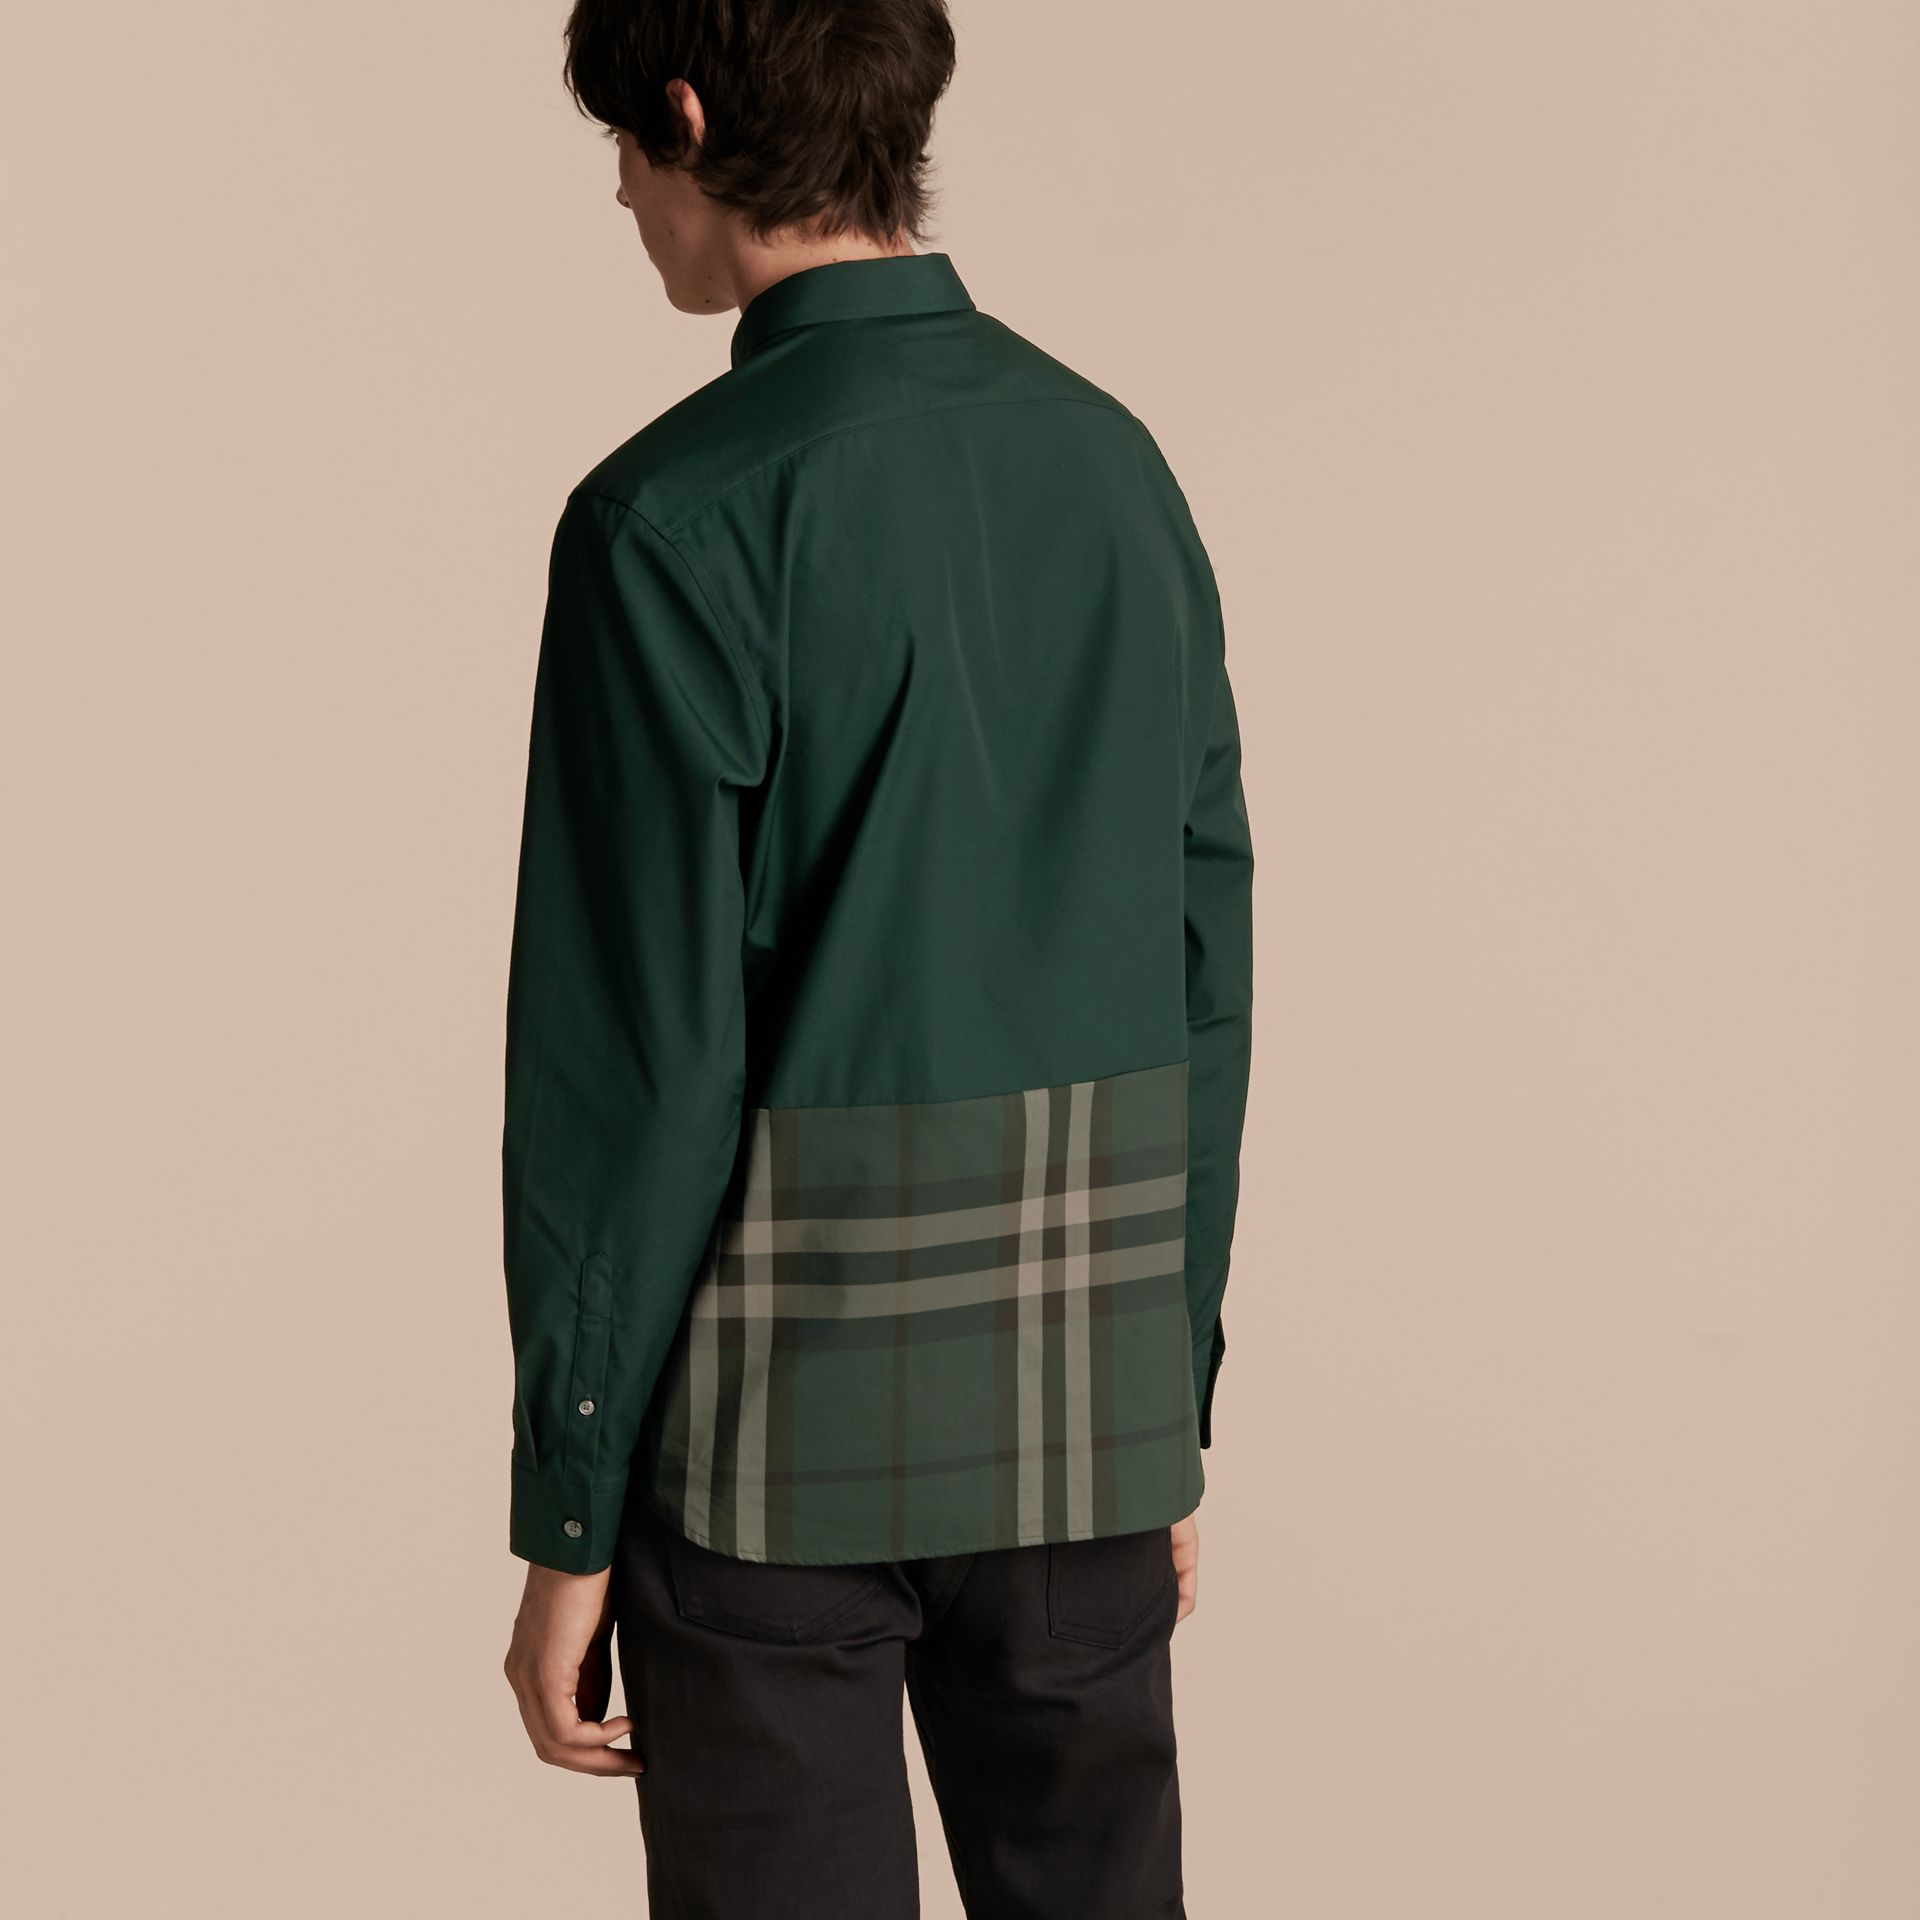 Racing green Check Panel Stretch-Cotton Poplin Shirt Racing Green - gallery image 3